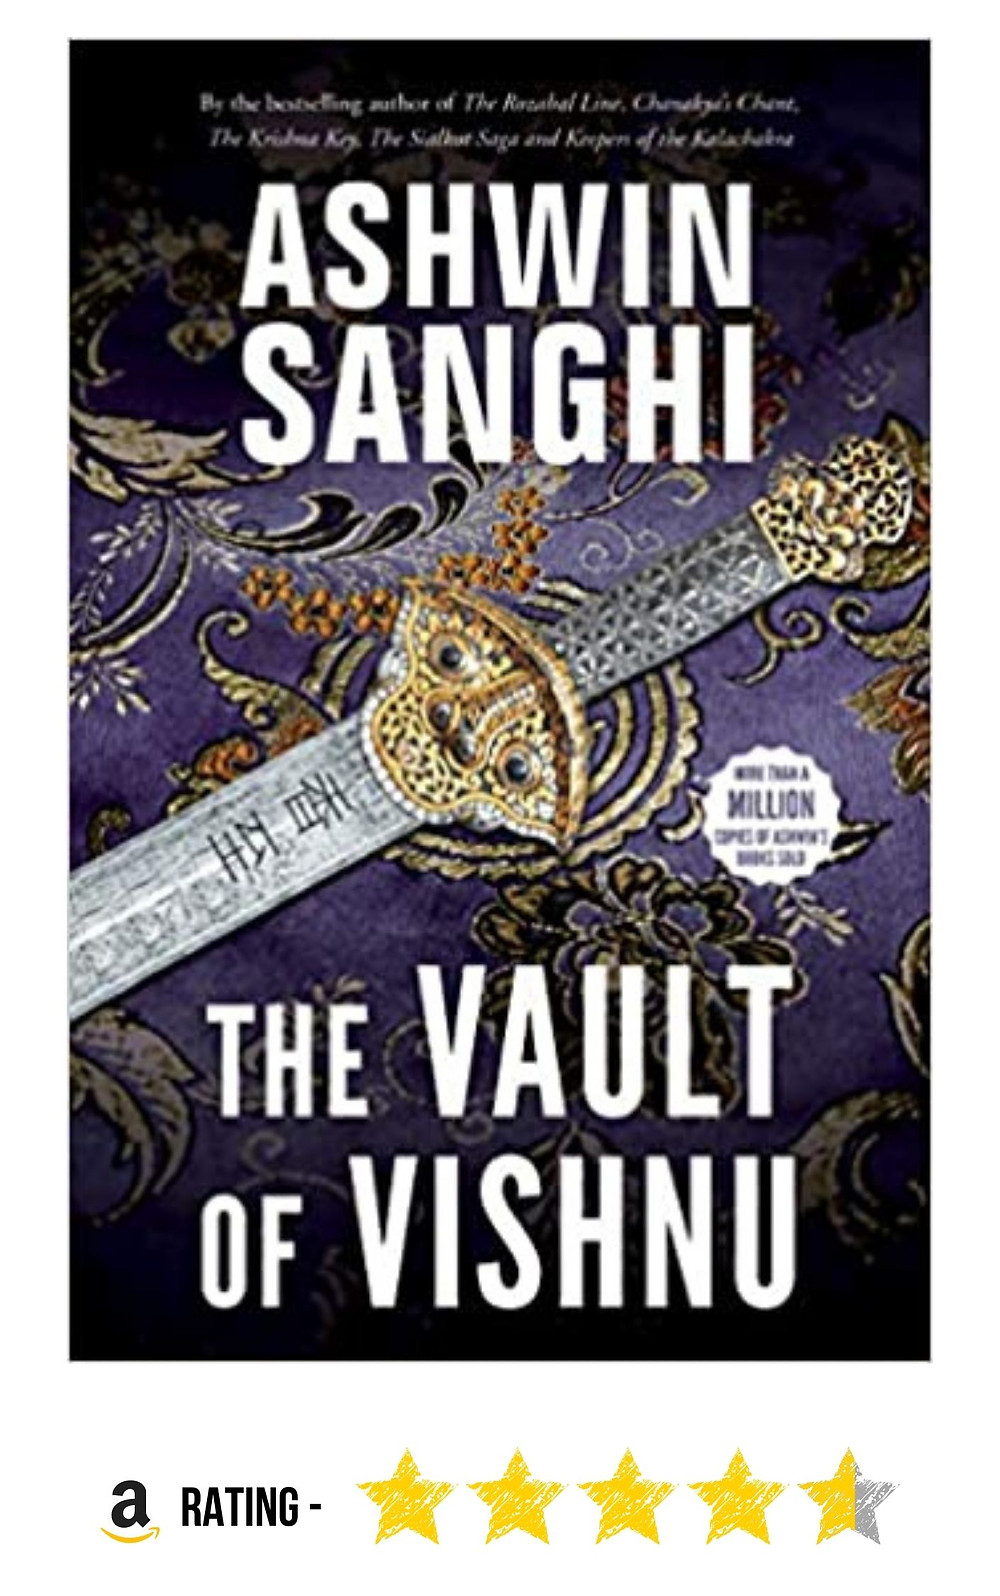 Amazon purchase link to Ashwin Sanghi's historical mystery-thriller, 'The Vault of Vishnu'